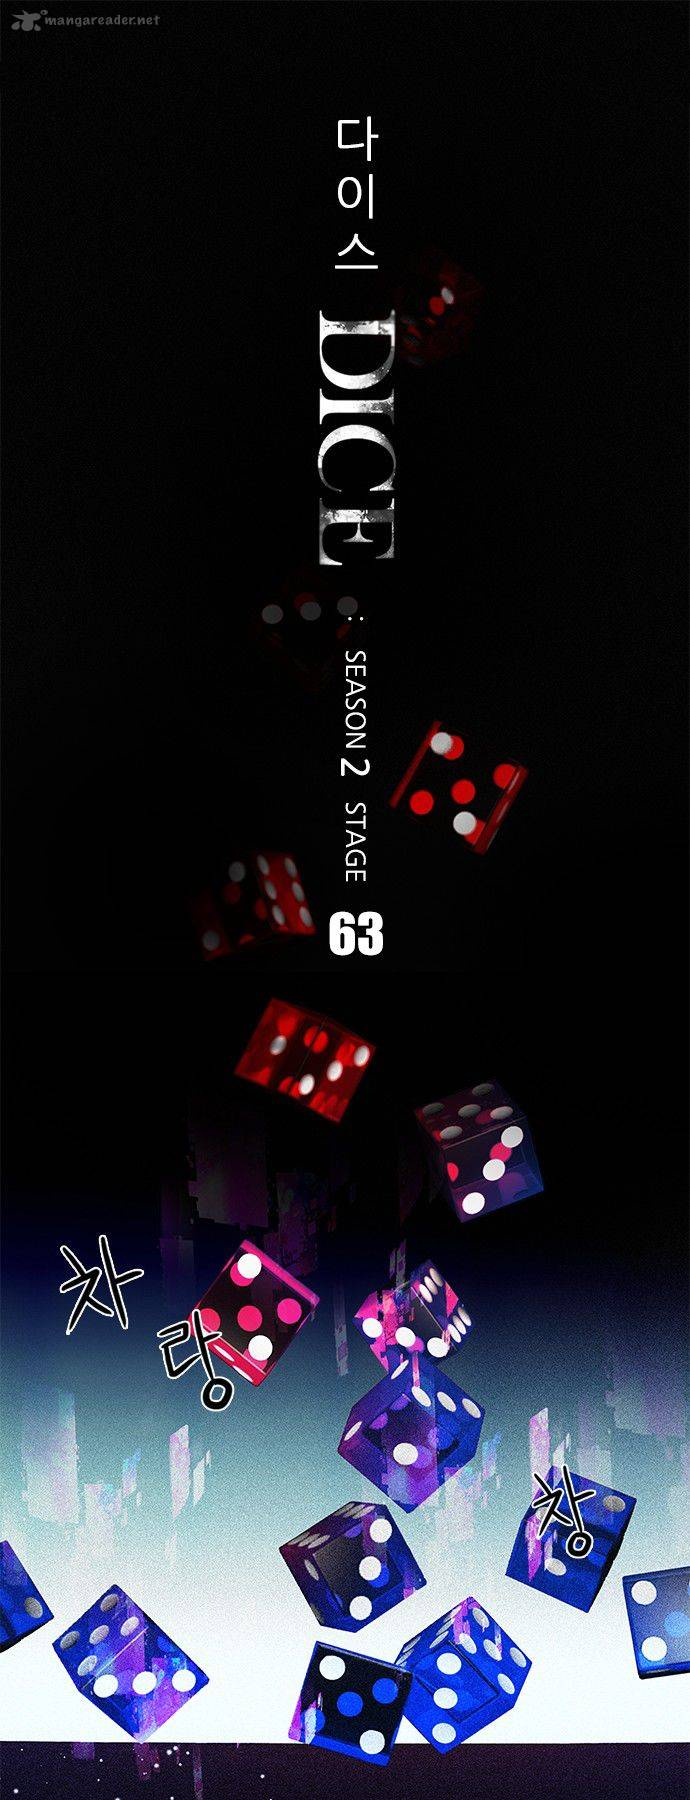 dice_the_cube_that_changes_everything_63_1